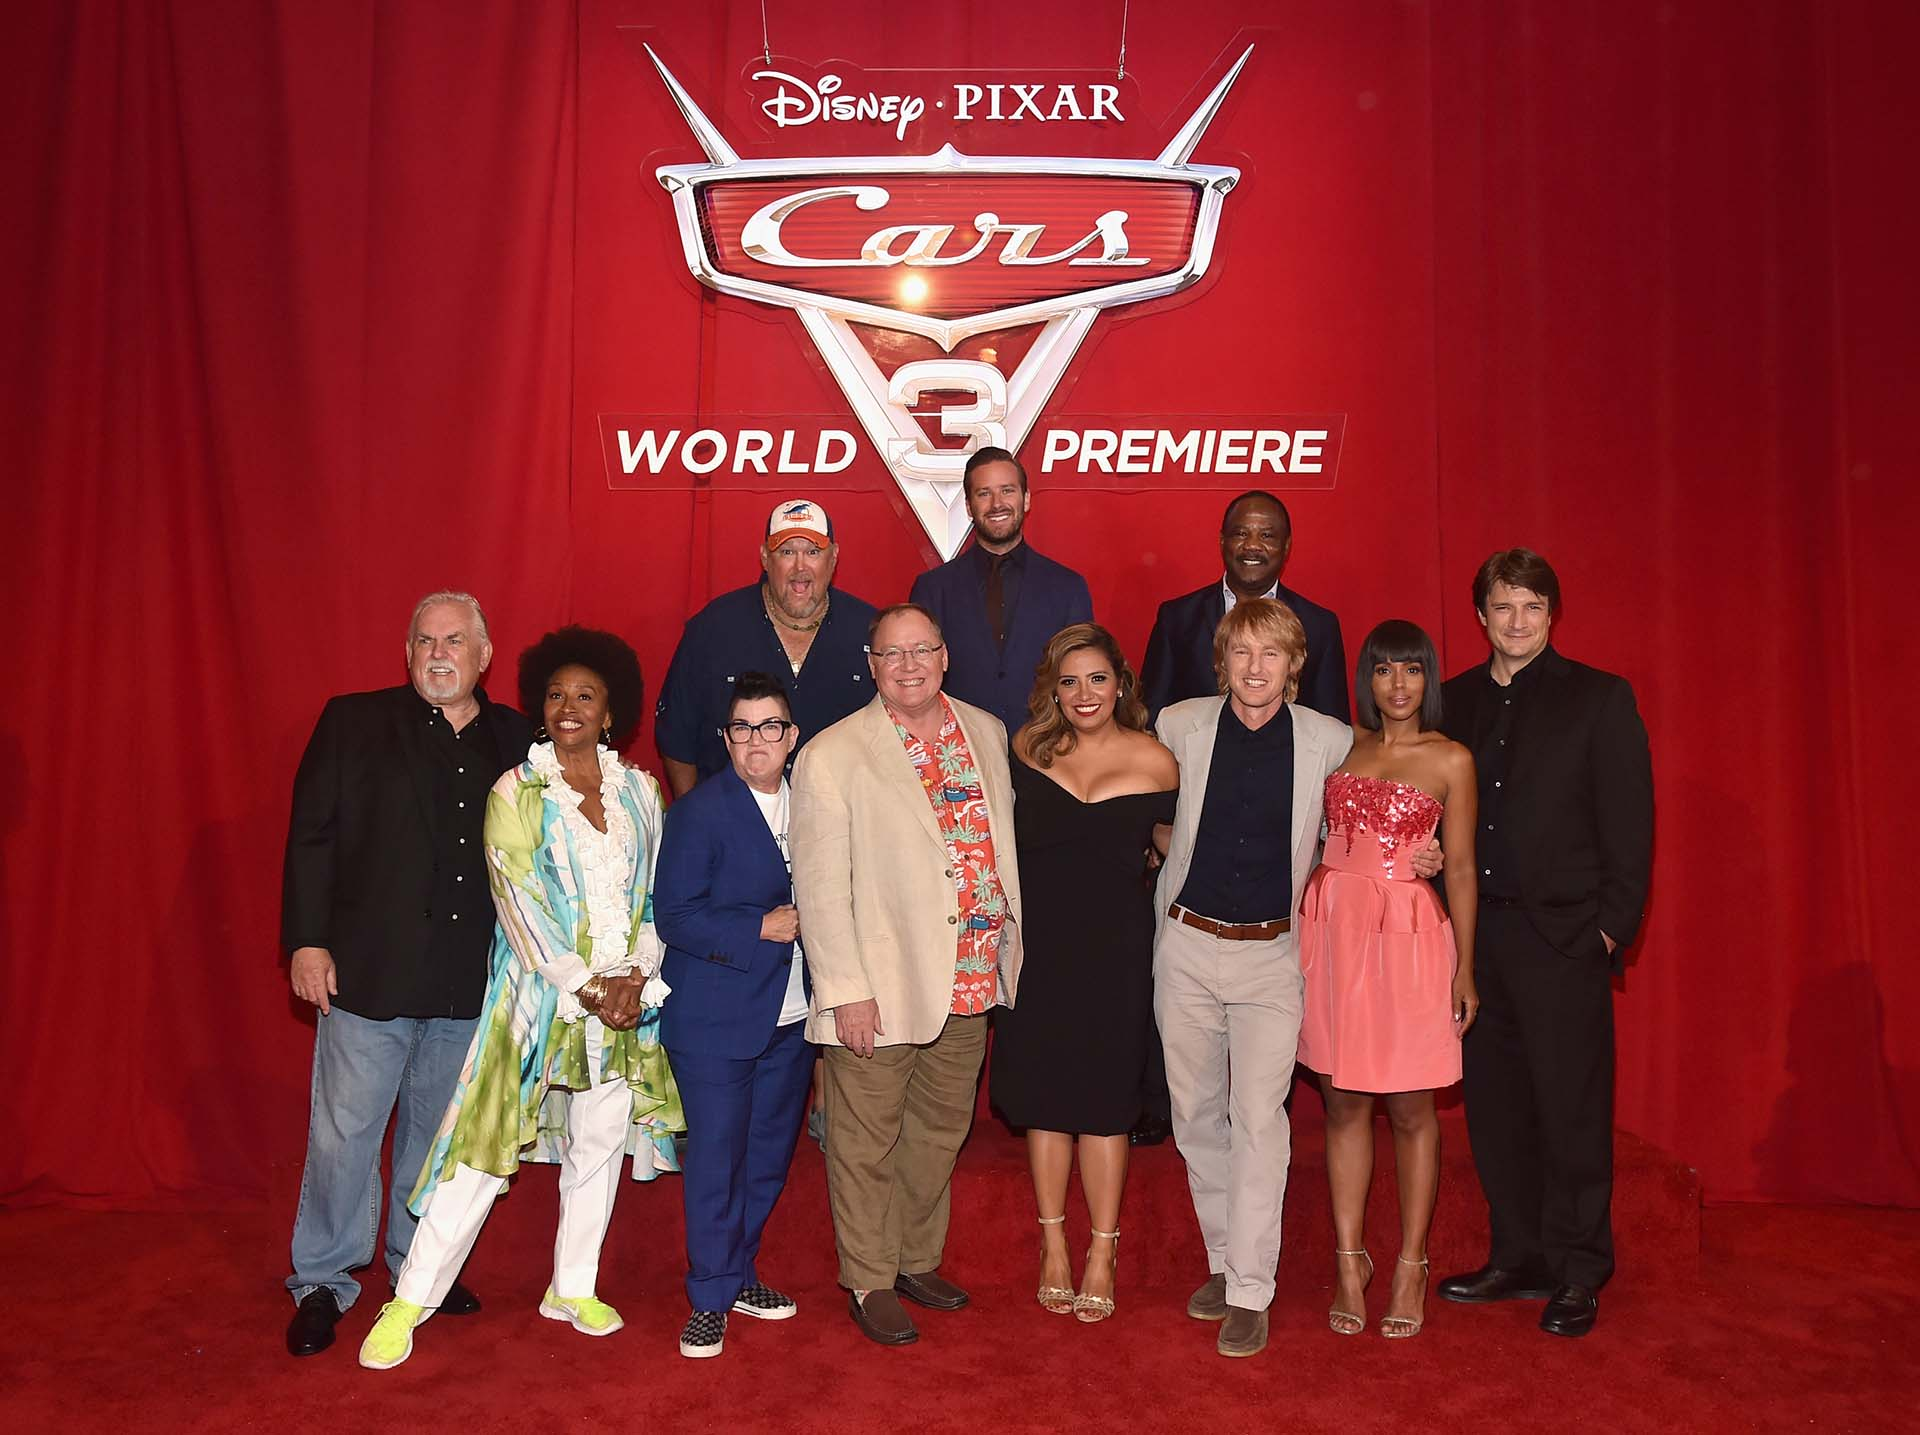 "El elenco completo en la foto oficial de la premiere mundial de ""Cars 3"": Larry the Cable Guy, Armie Hammer e Isiah Whitlock Jr. junto a John Ratzenberger, Jennifer Lewis, Lea DeLaria, John Lasseter, Cristela Alonzo, Owen Wilson, Kerry Washington y Nathan Fillion //: Fotos: Getty Images"